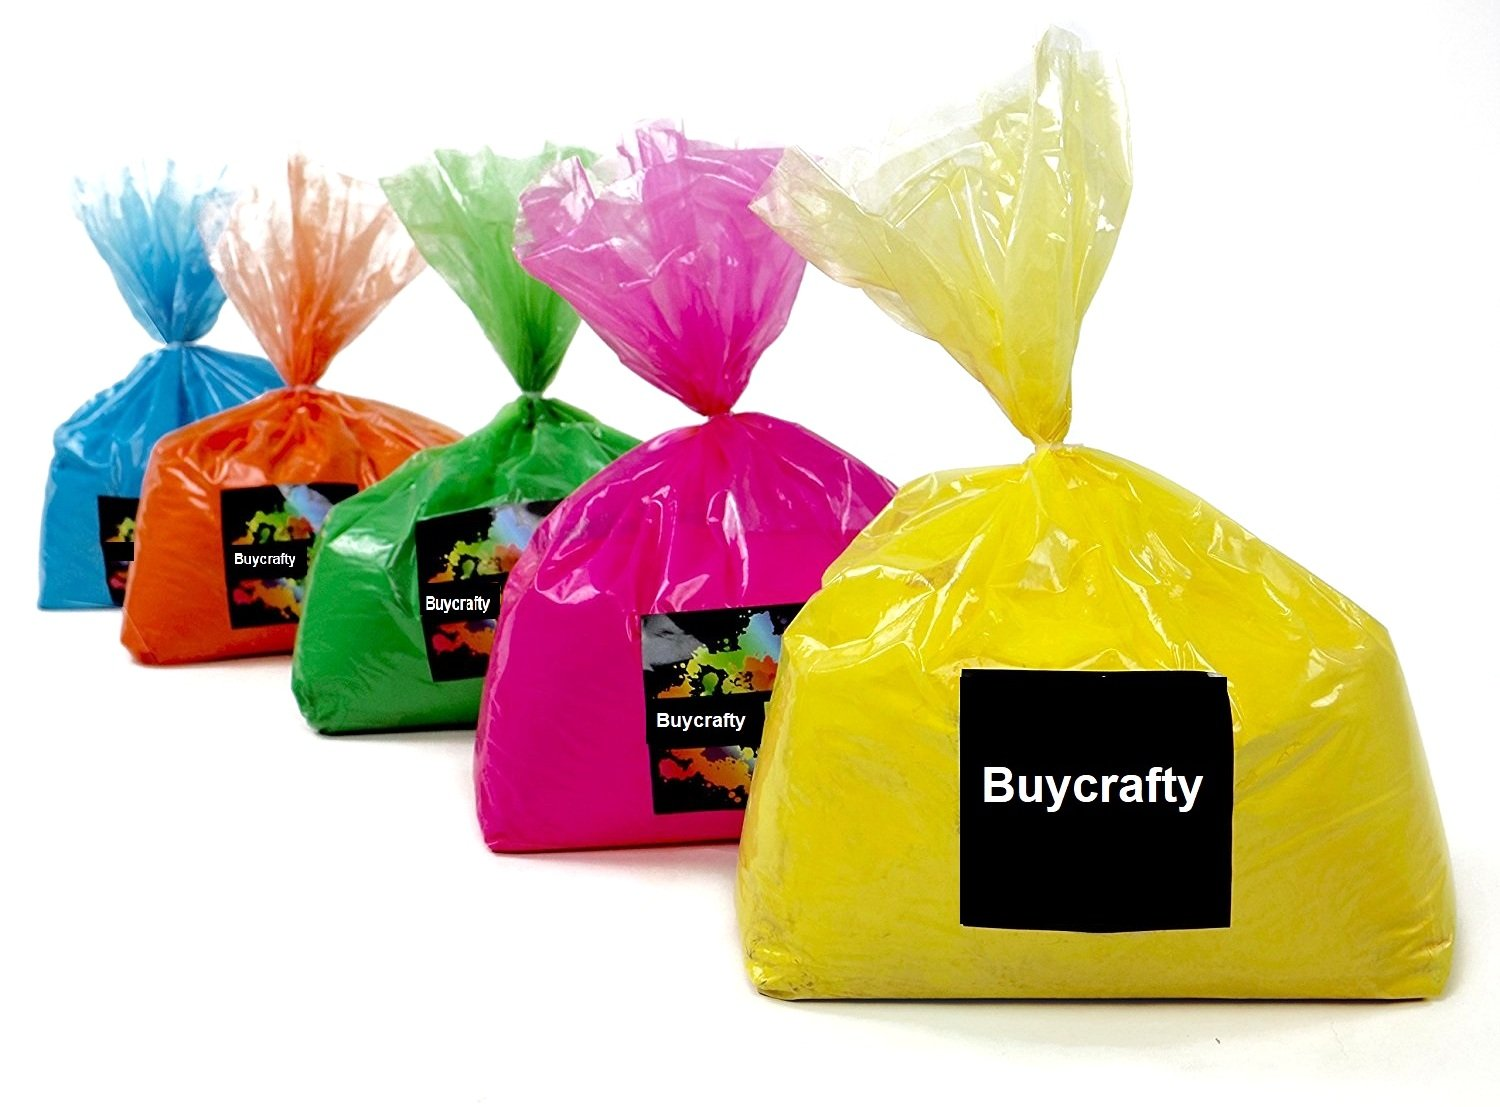 Buycrafty Multi Mix Pack 25 Pounds - 5 pounds of 5 colors - Ideal for color run events, youth group color wars, Holi events and more, Festival Colors (Rangoli)